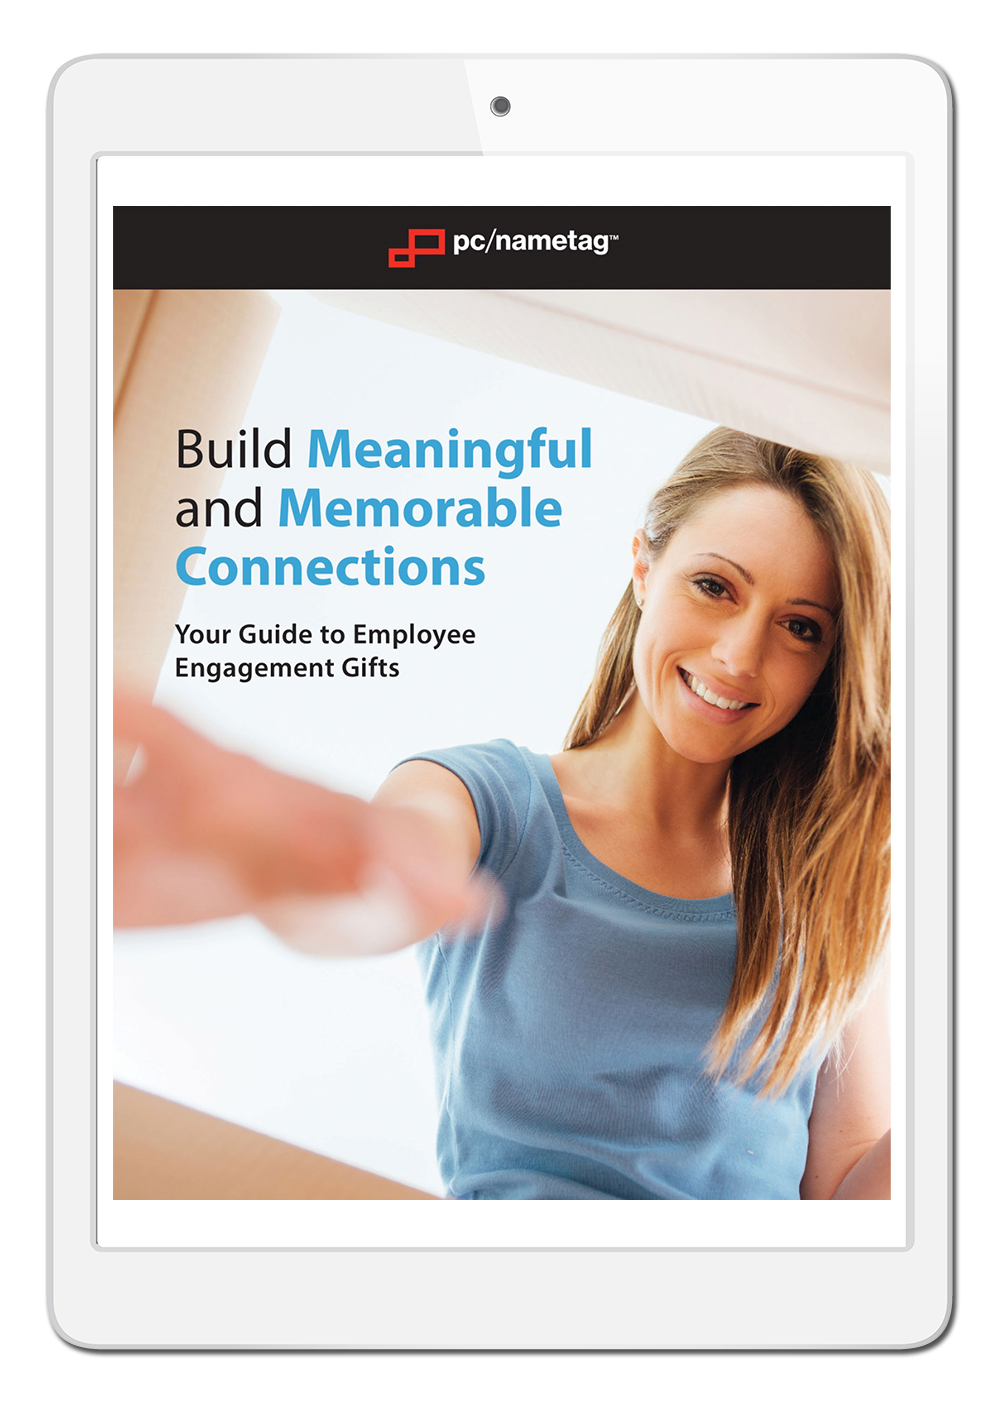 pc/nametag Employee Engagement Gifts Look Book